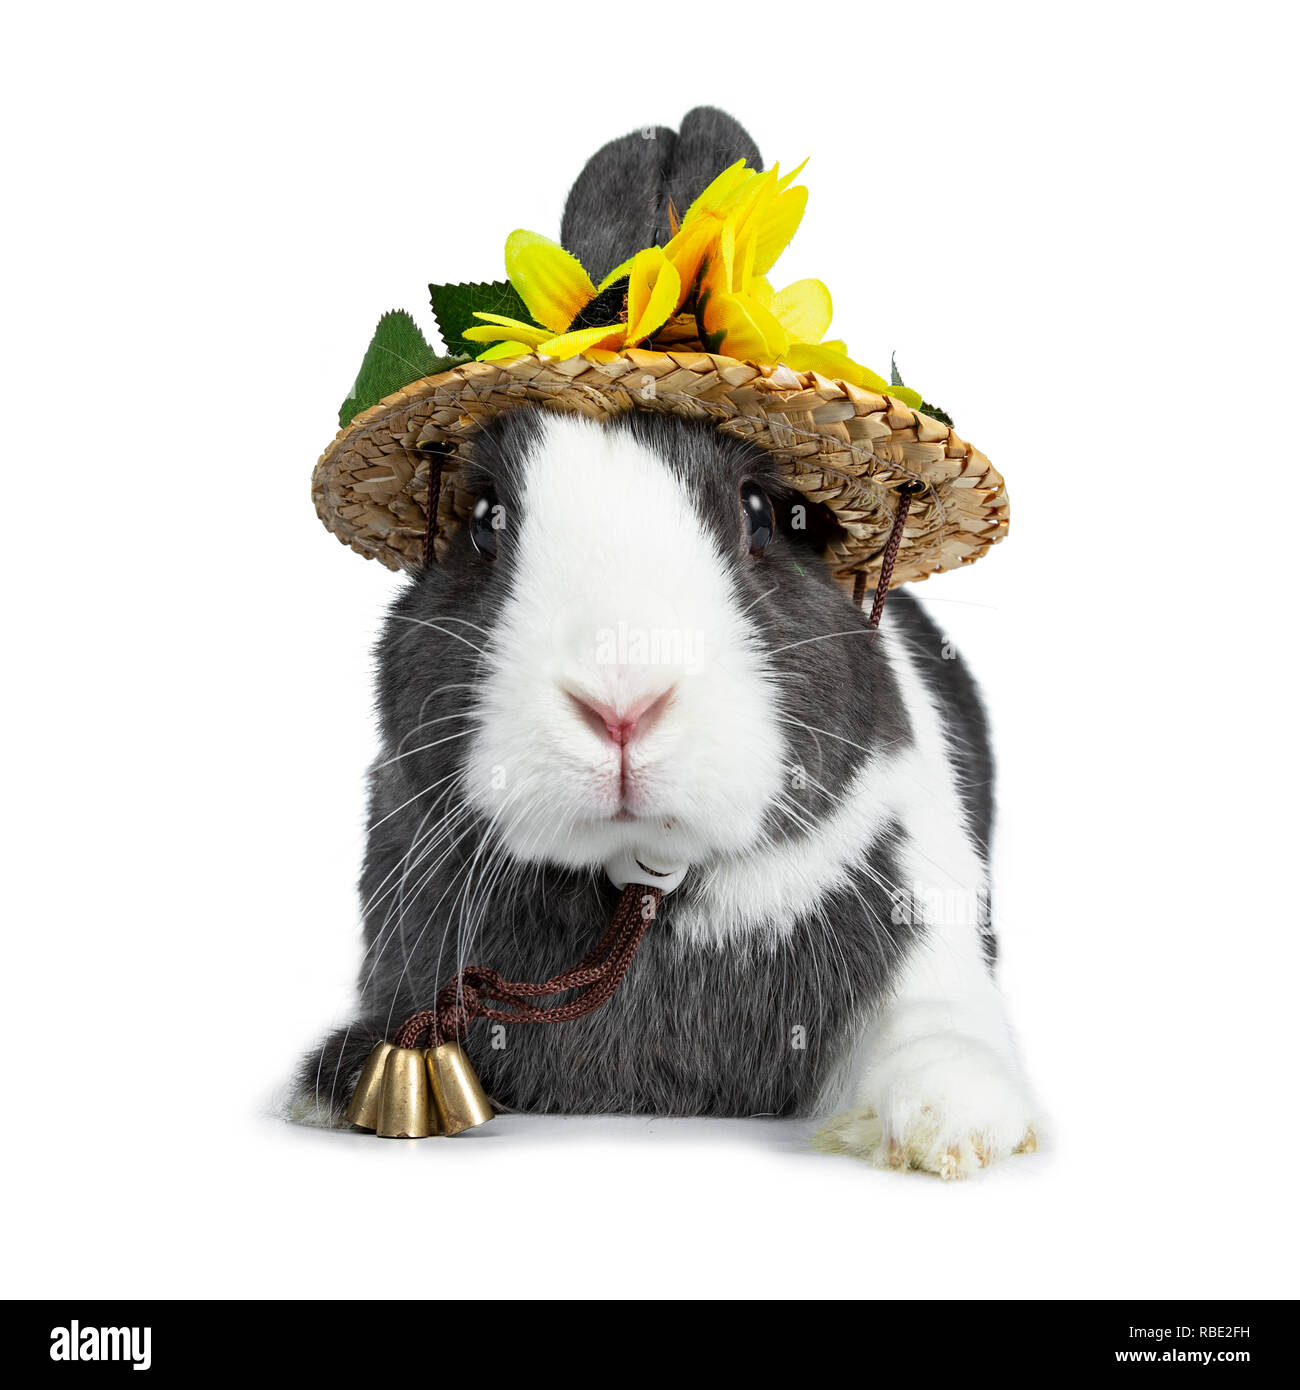 Cute grey with white European rabbit, Stting wearing a straw hat with sun flowers. Looking at camera facing front. Isolated on white background. - Stock Image